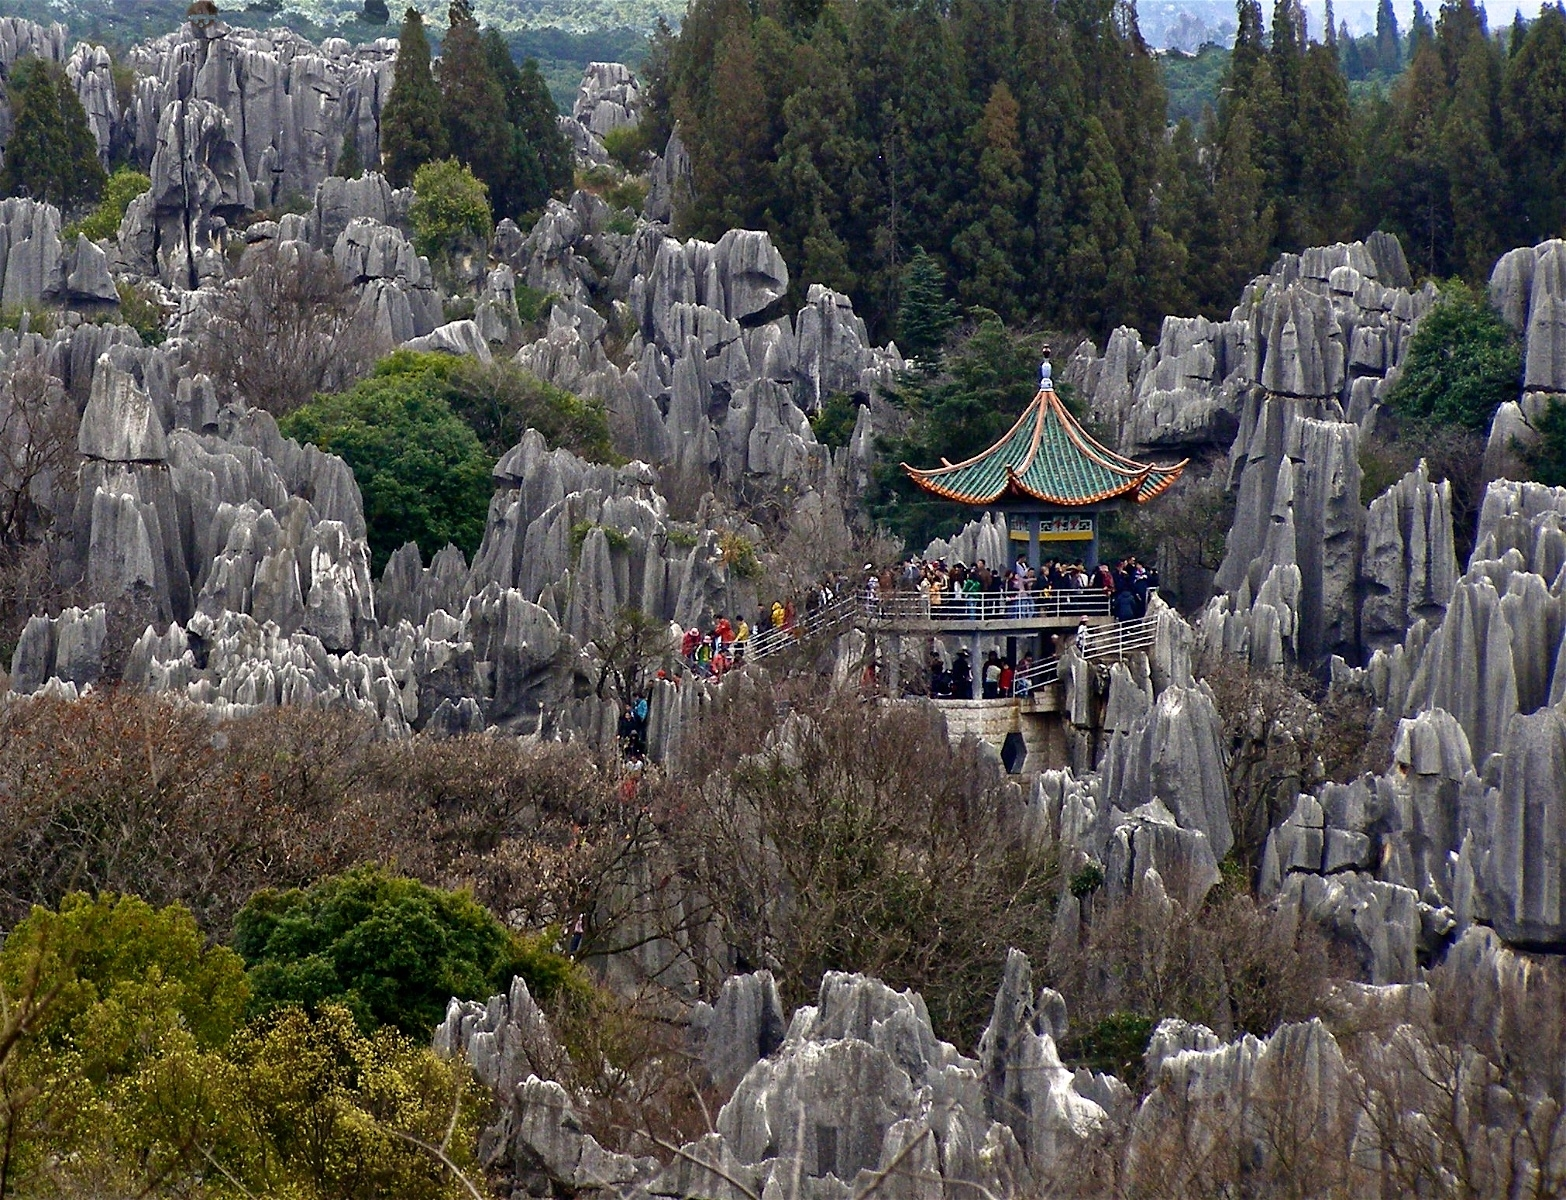 'The Stone Forest, a UNESCO World Heritage site, is a masterpiece of nature.' (TM 1 Place) by Loujean LaMalfa-Prince - SR